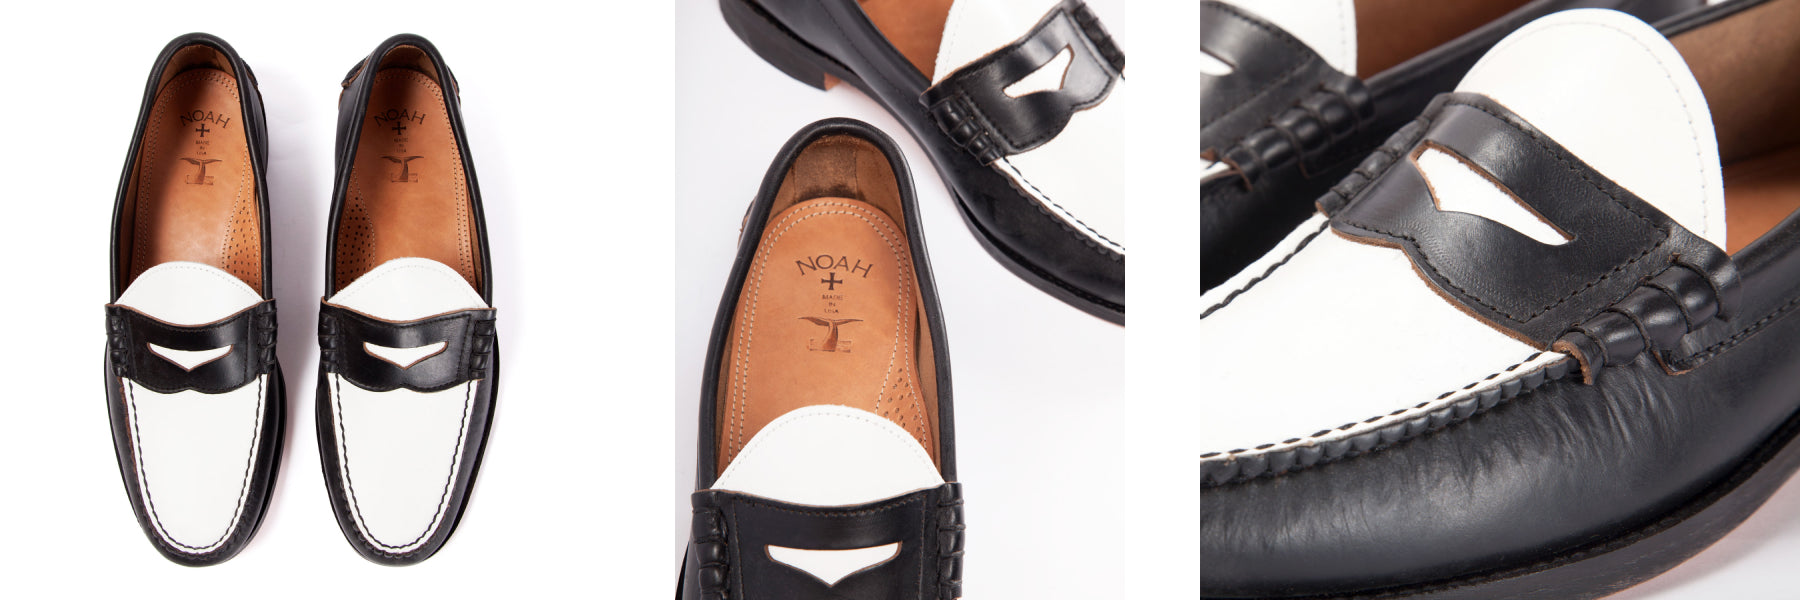 Two-Tone-Penny-Loafer